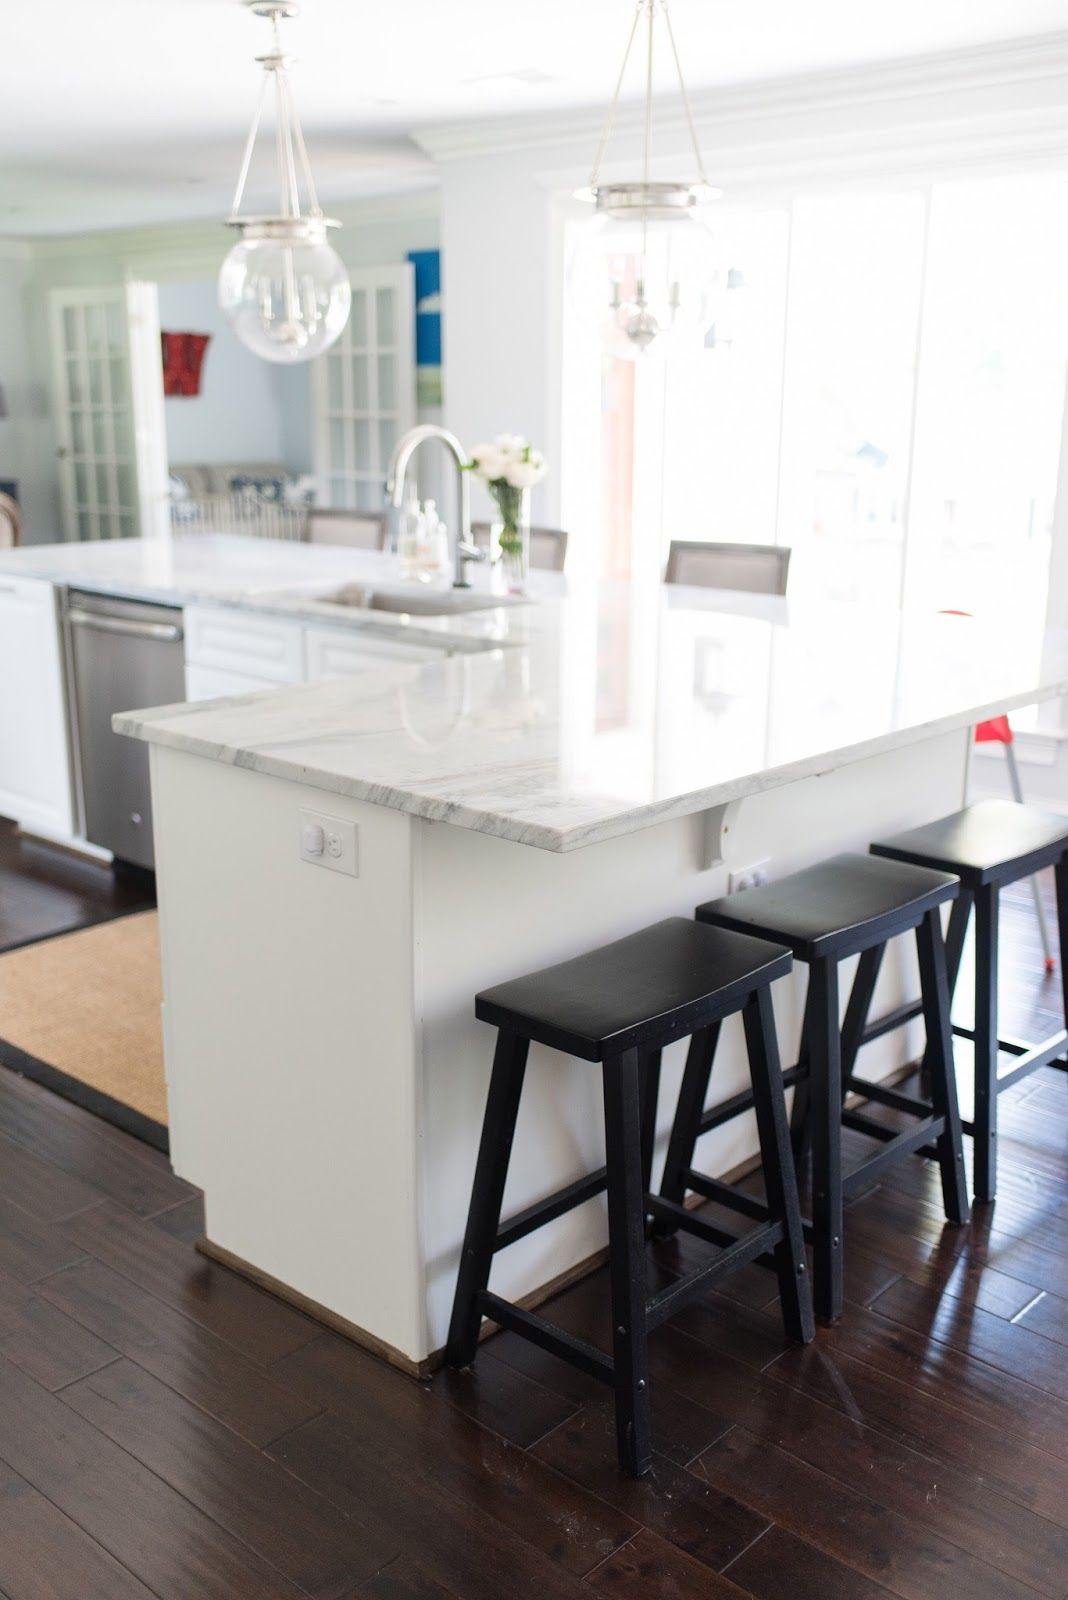 A Year With White Counter Tops | DIY Home Decor: Projects, Makeovers ...